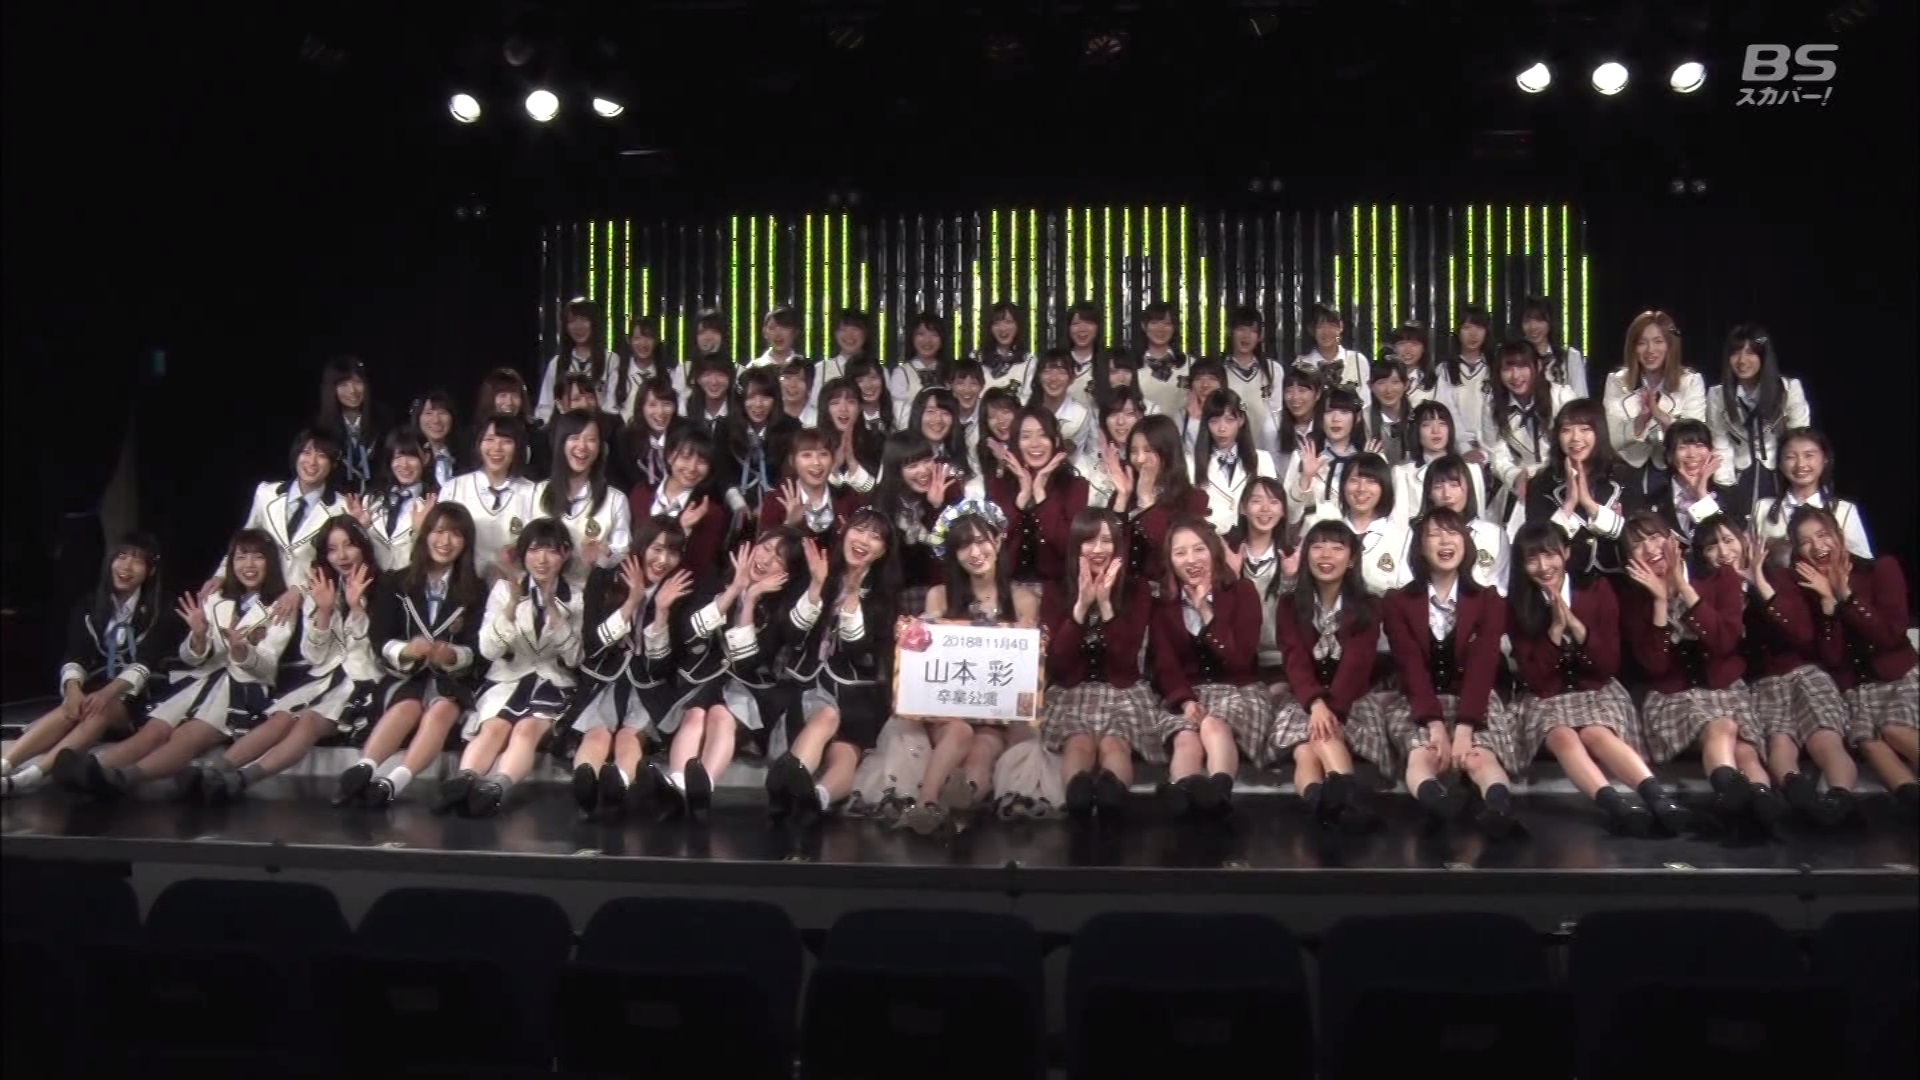 【NMB48】BSスカパー!「山本彩卒業特番〜NMB48で歩んだ8年間〜」キャプ画像。